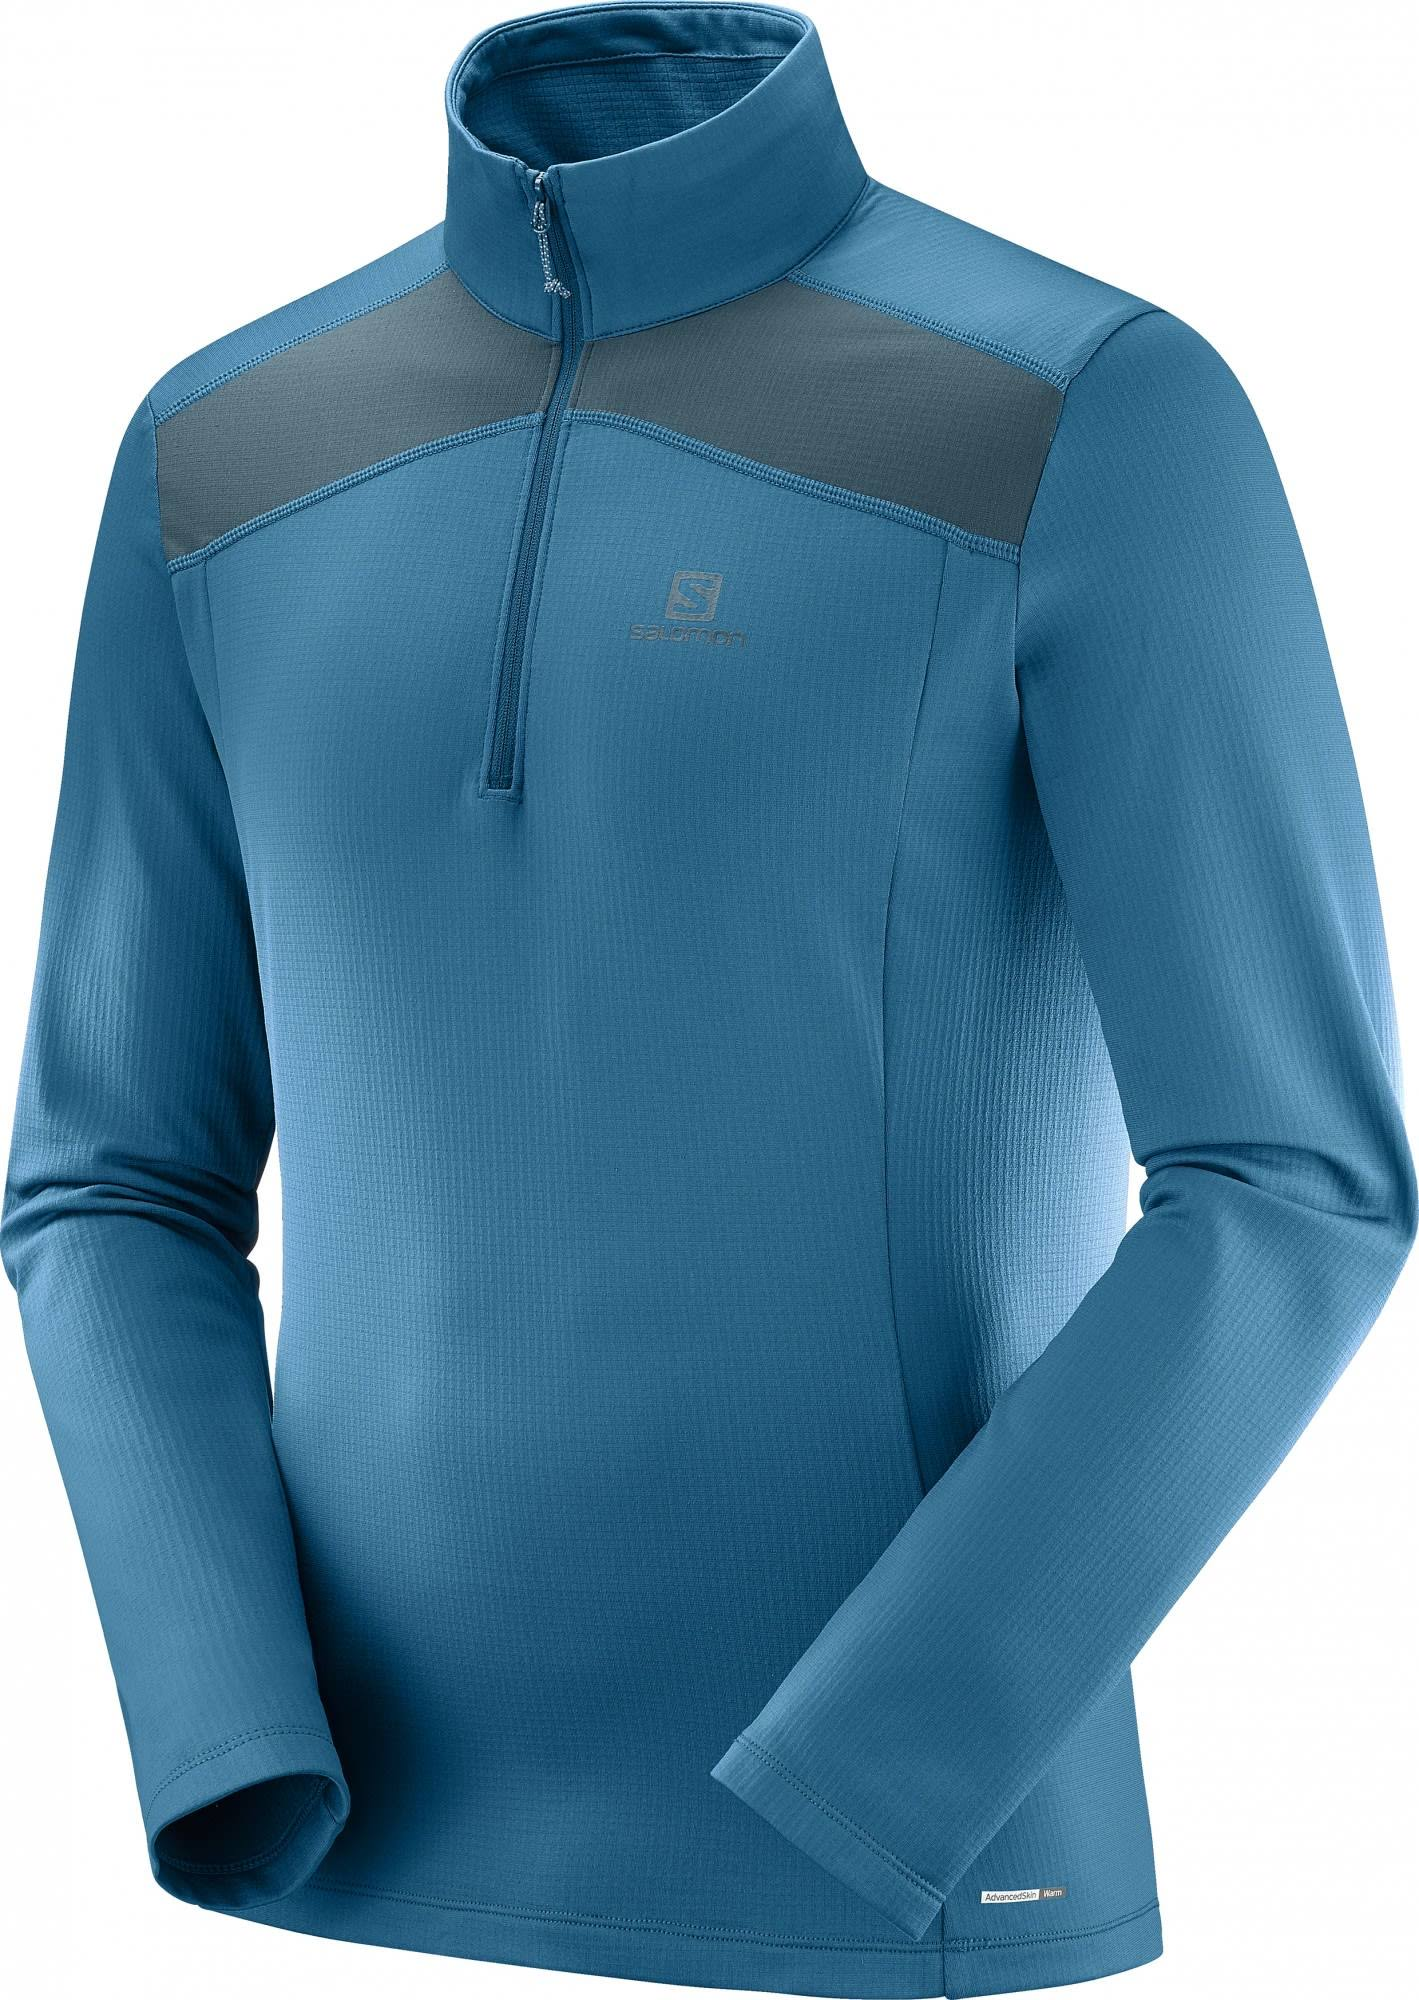 amp; Blue Mens Color Powerstretch Hz Lt Salomon Pound Pound Pullover Fleece Discovery Reflecting size Maroccon Blue S xI4YFwqt